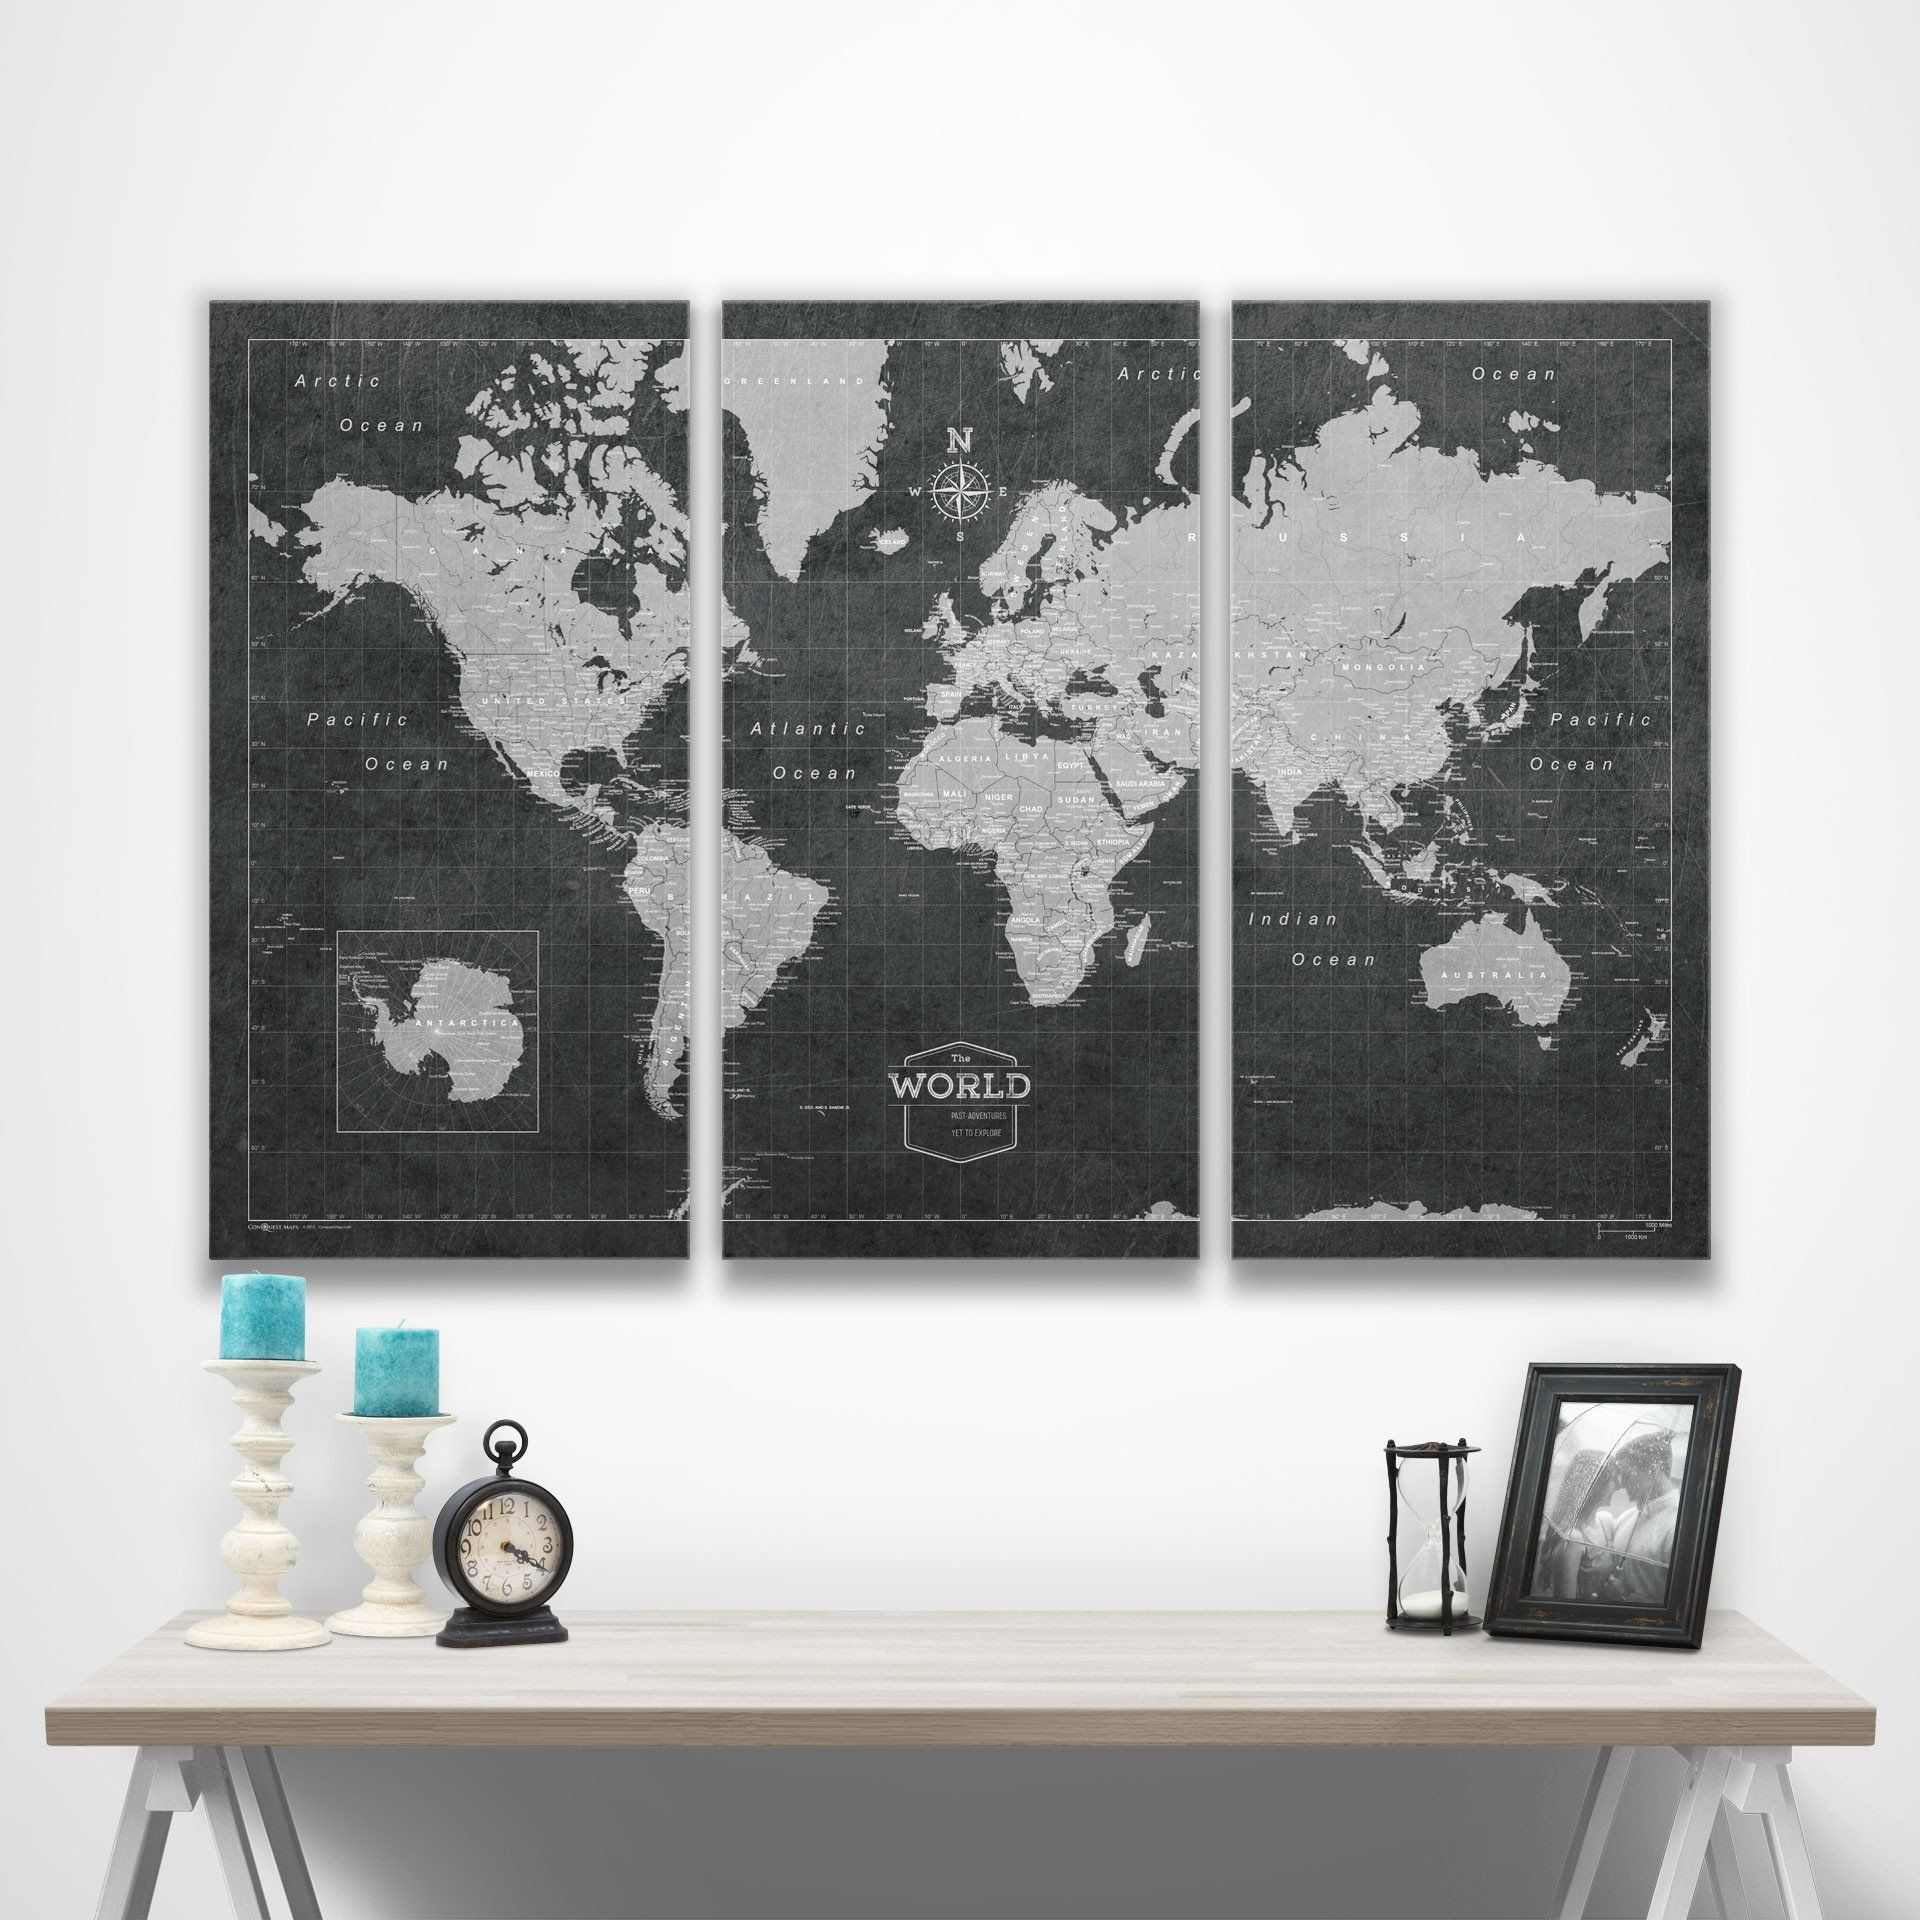 World travel map pin board wpush pins modern slate travel maps world travel map pin board wpush pins modern slate gumiabroncs Choice Image